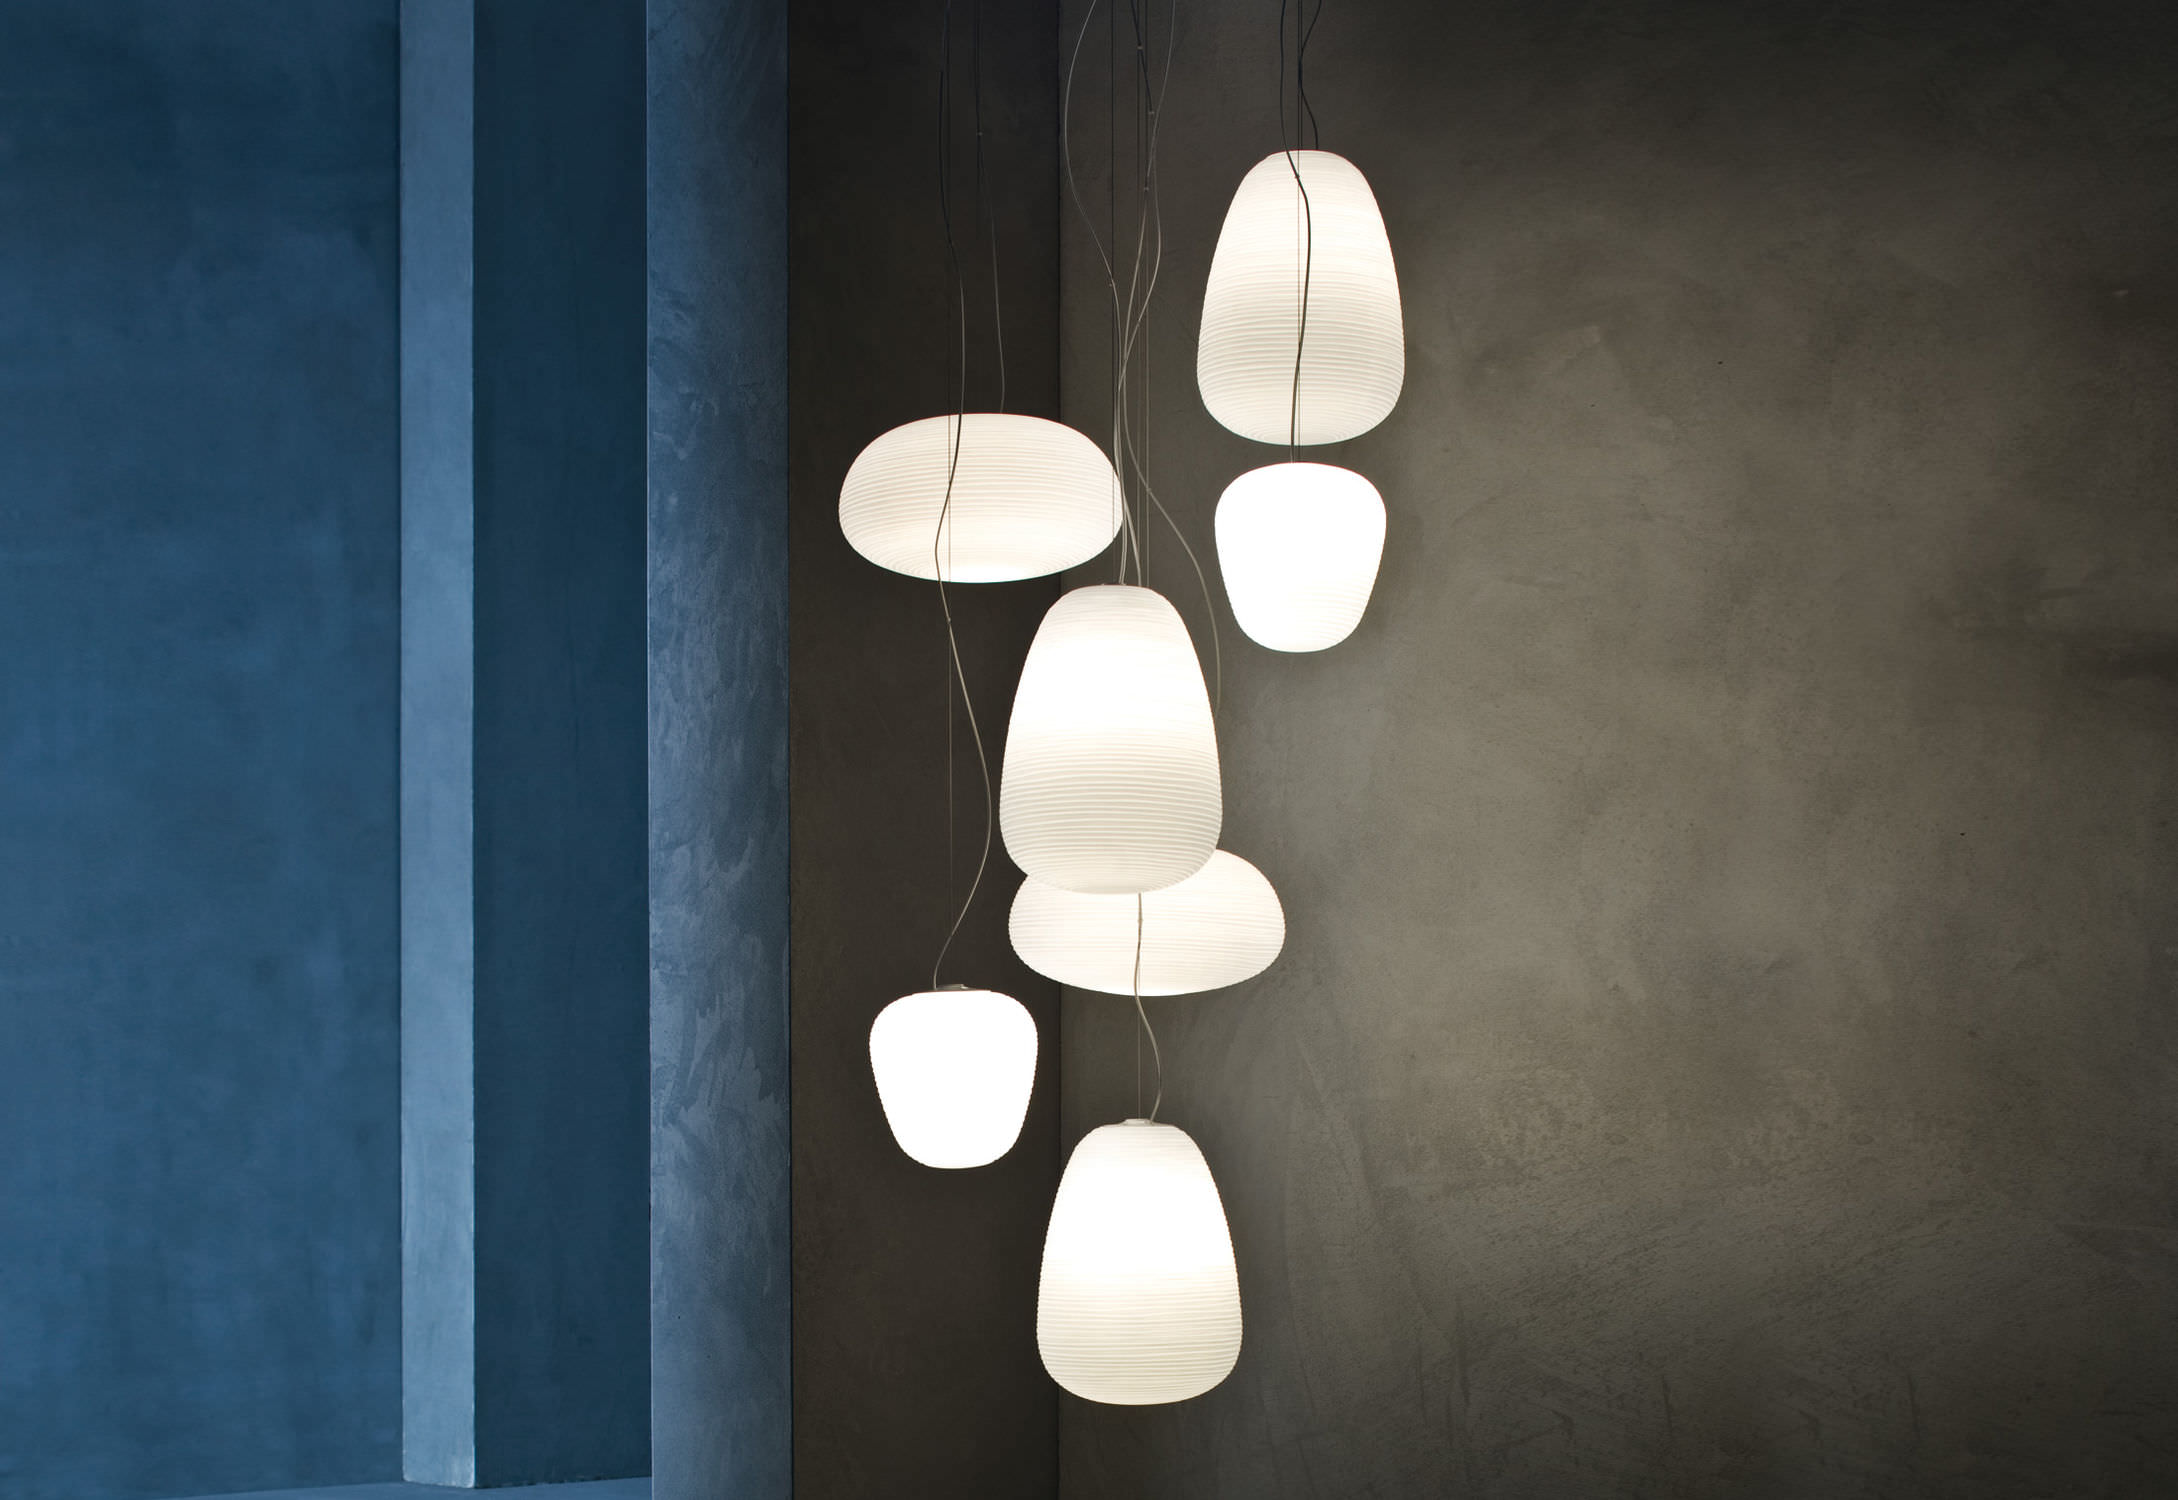 pendant-lighting-fixtures-light-murano-glass-mini-pendant-lights-construct-glass-pendant-murano-glass-pendant-lights-wholesalemurano-glass-pendant-light-reviewsmurano-glass-lightingmurano-glass.jpg